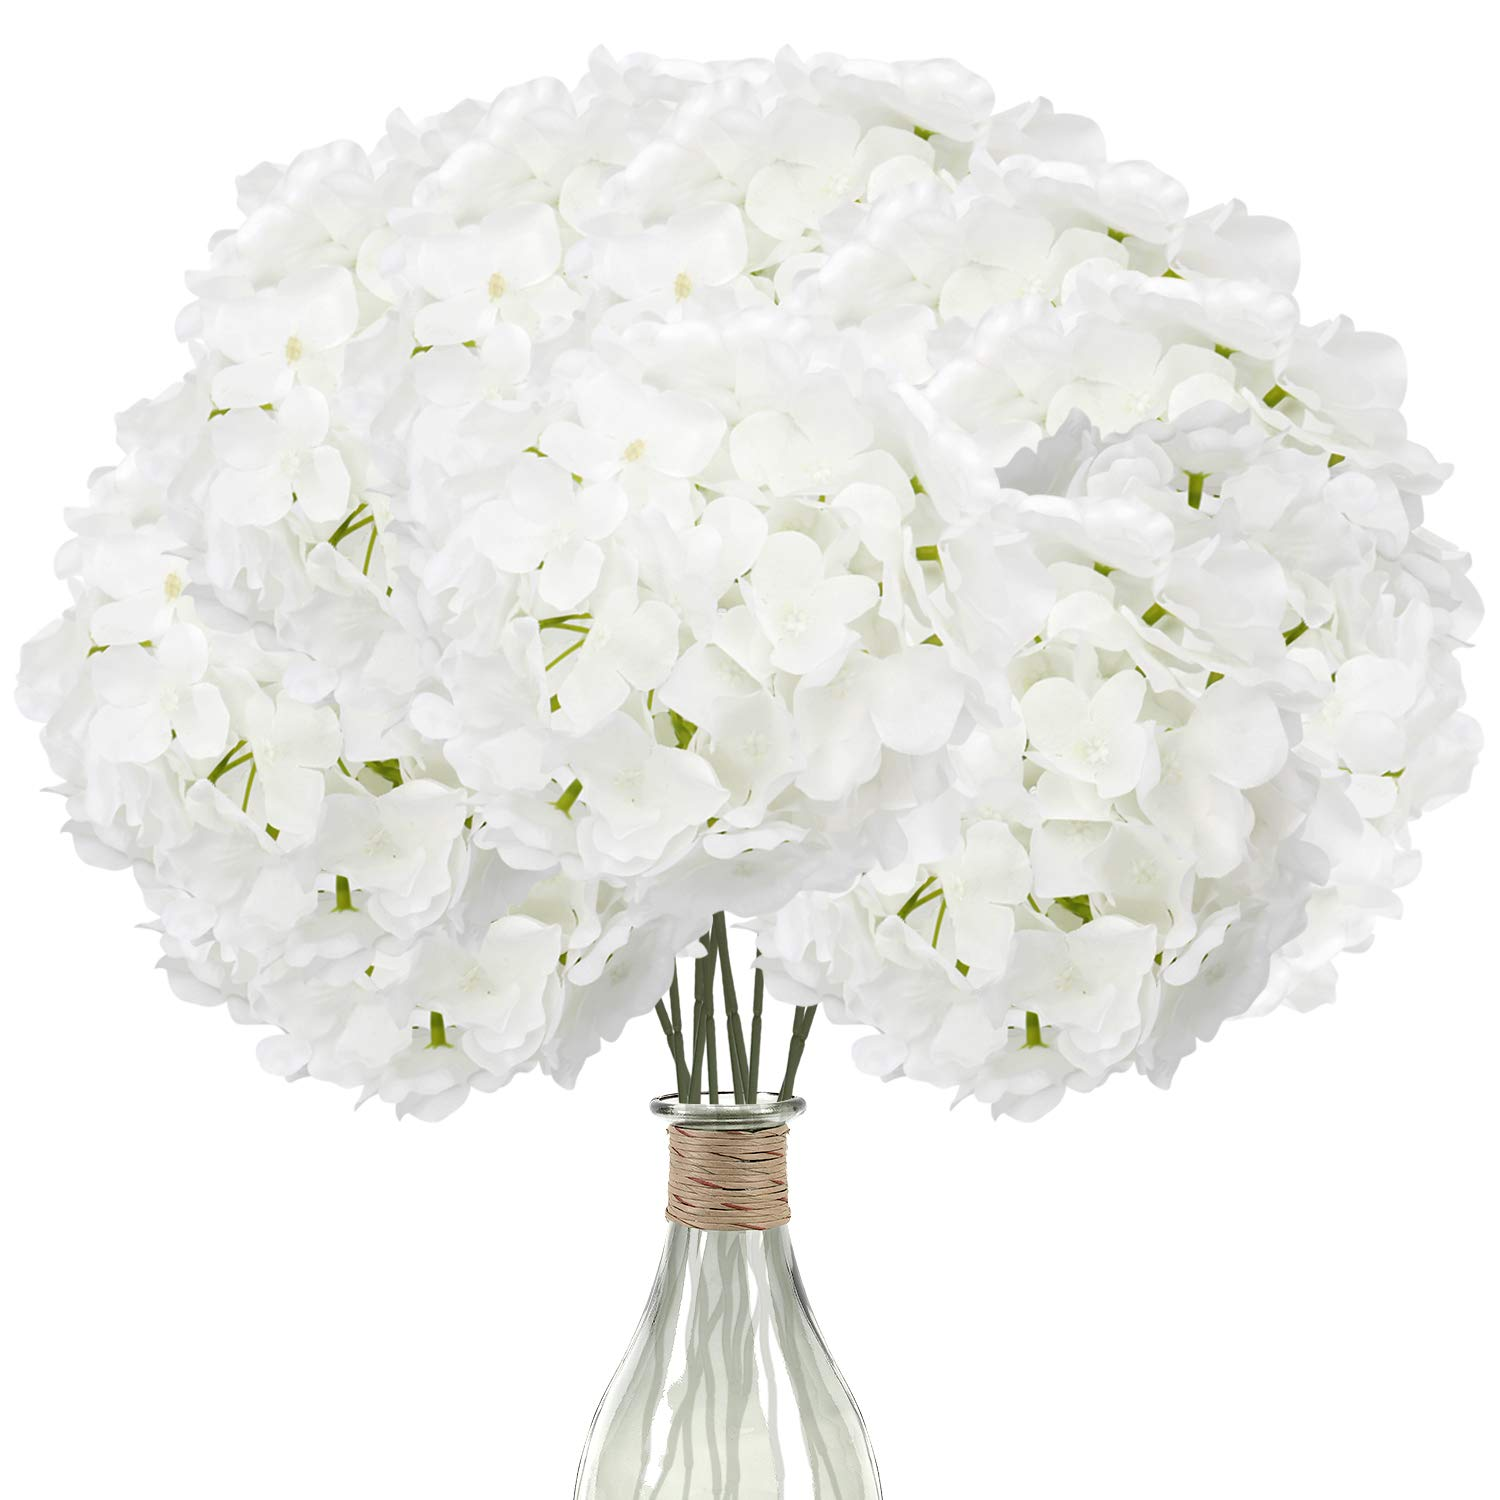 Elfii 10 Pack Silk Hydrangea Heads Artificial Flowers Heads with Stems for Home Wedding Party Decor Bride Holding Flowers Bouquet Baby Shower Decoration Centerpiece DIY Wreath Craft -Pure White